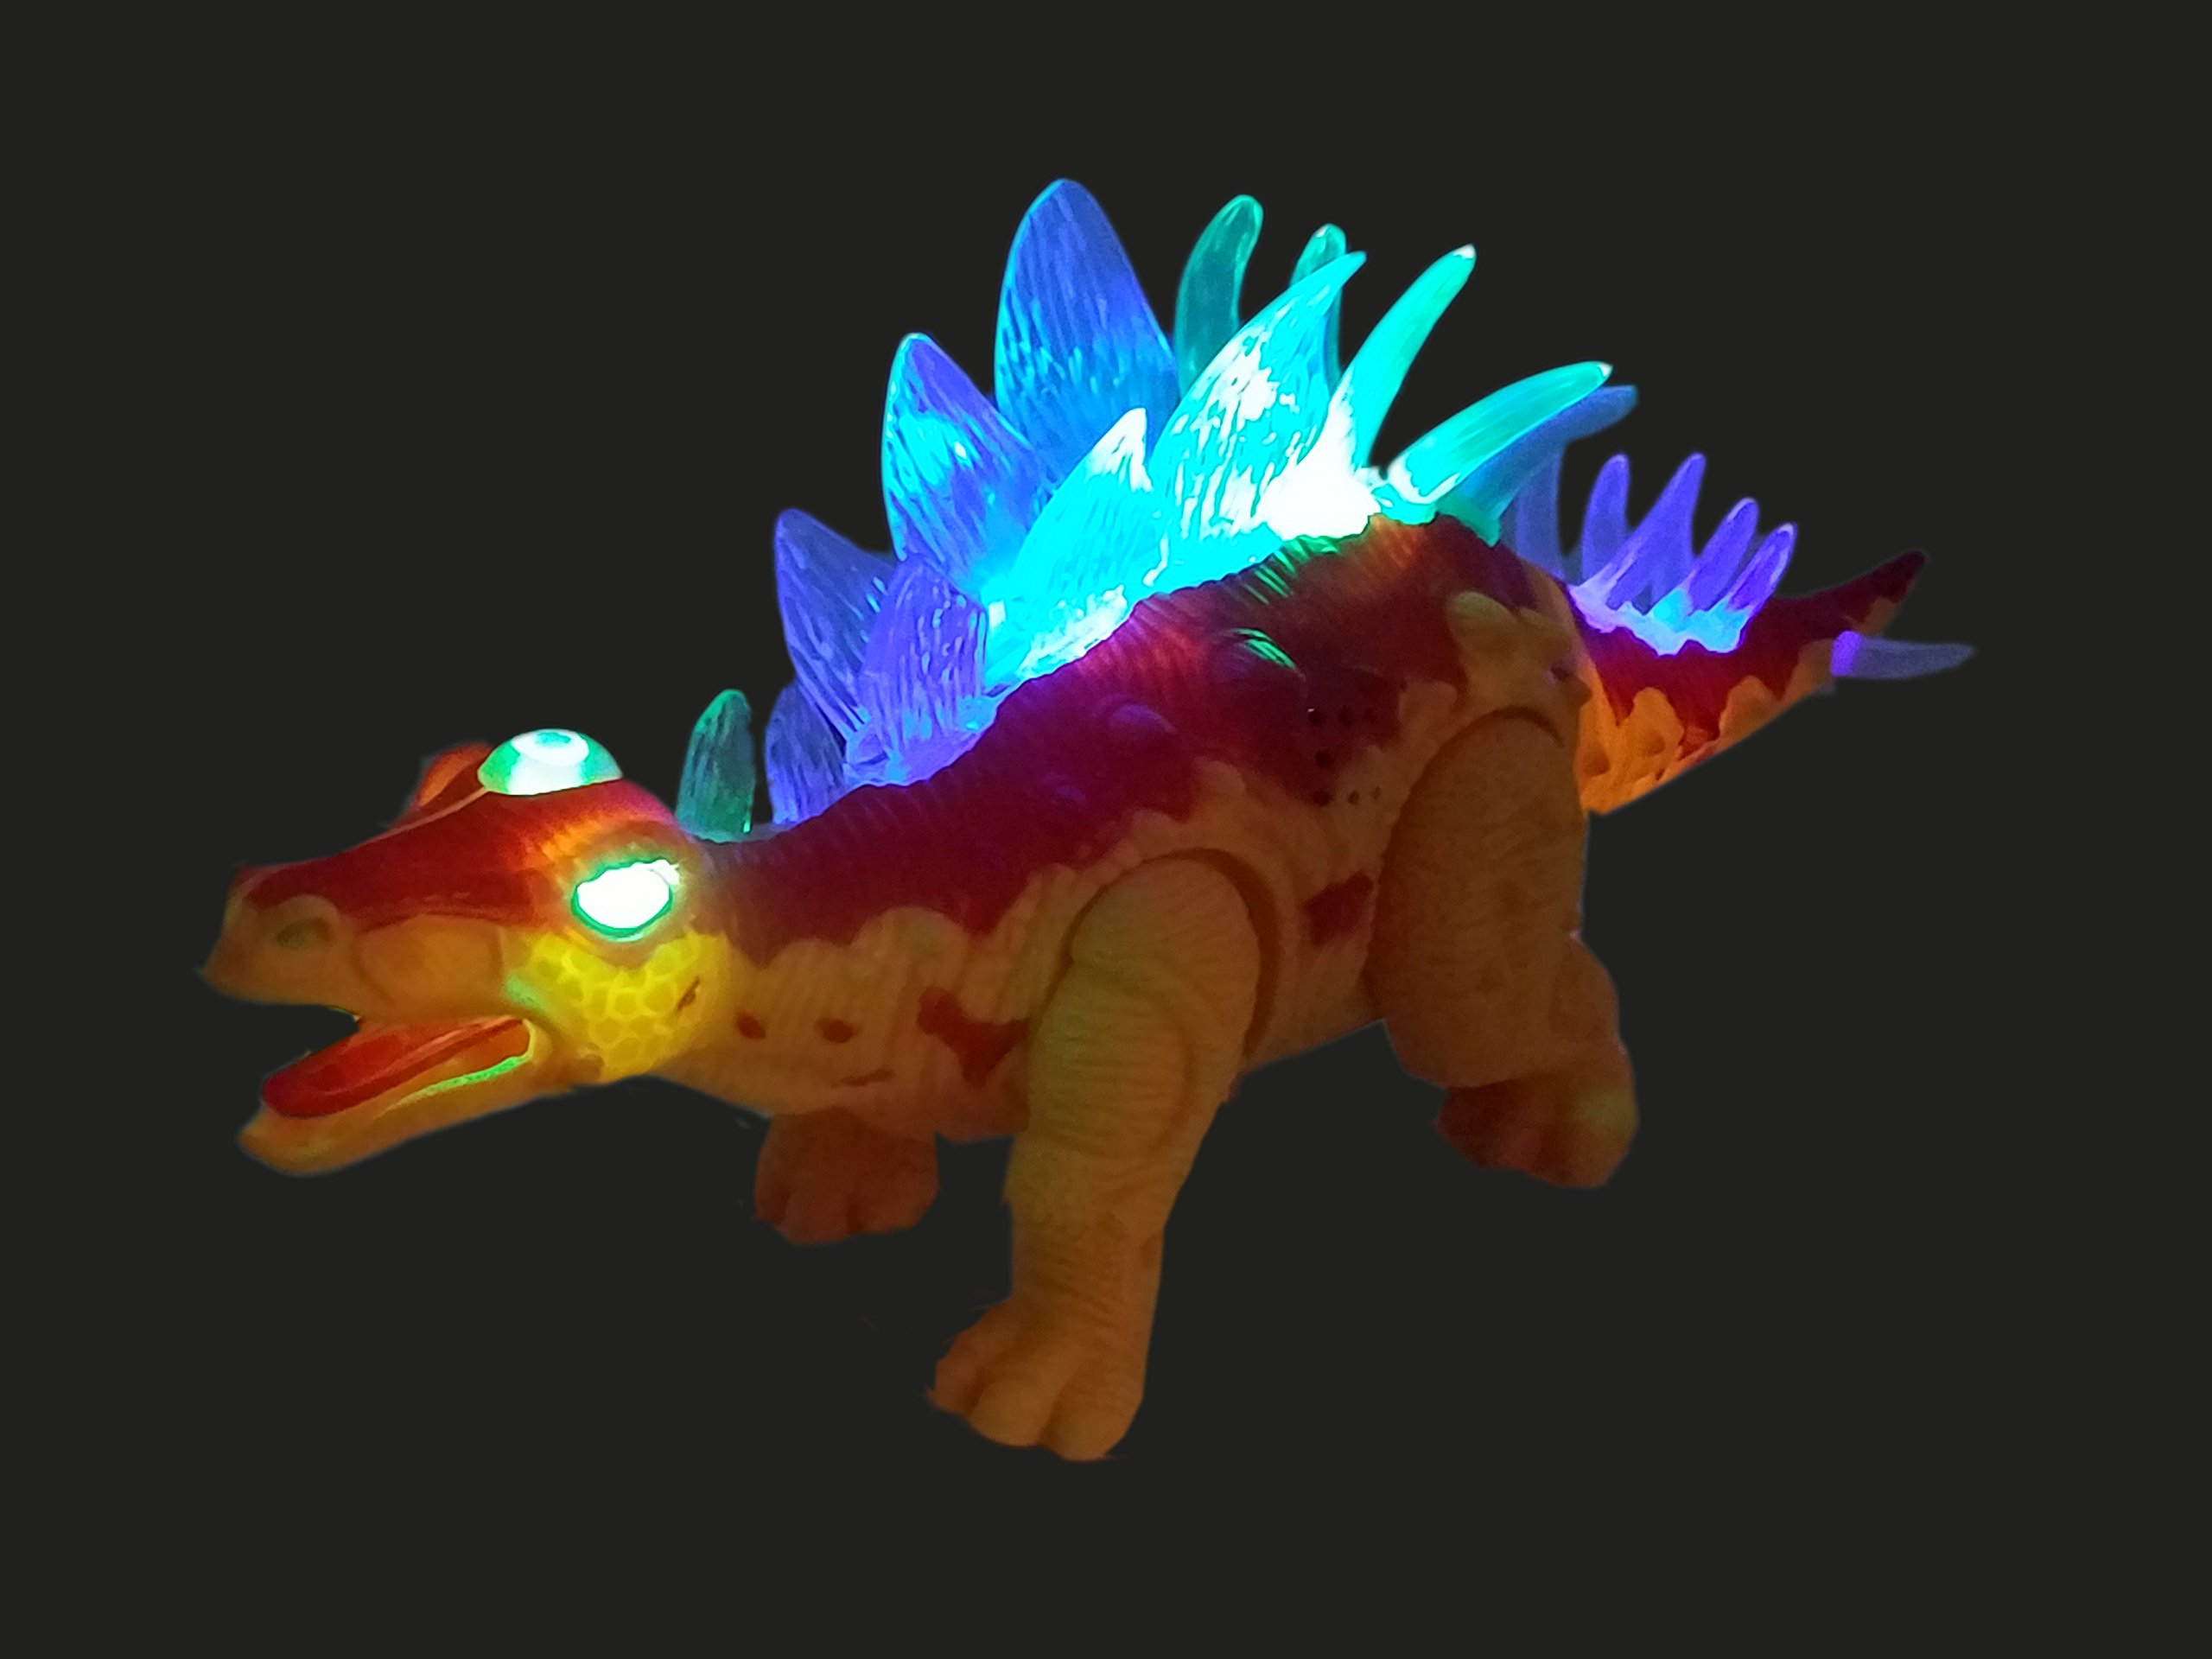 Battery Operated Jurassic Dinosaur Kids Toy ANJ International Walking Walking Dinosaur Toys for Boys Perfect Toy Gift for Kids Tail Wagging Roaring and Glowing Colors May Vary, Age 3+ Stegosaurus